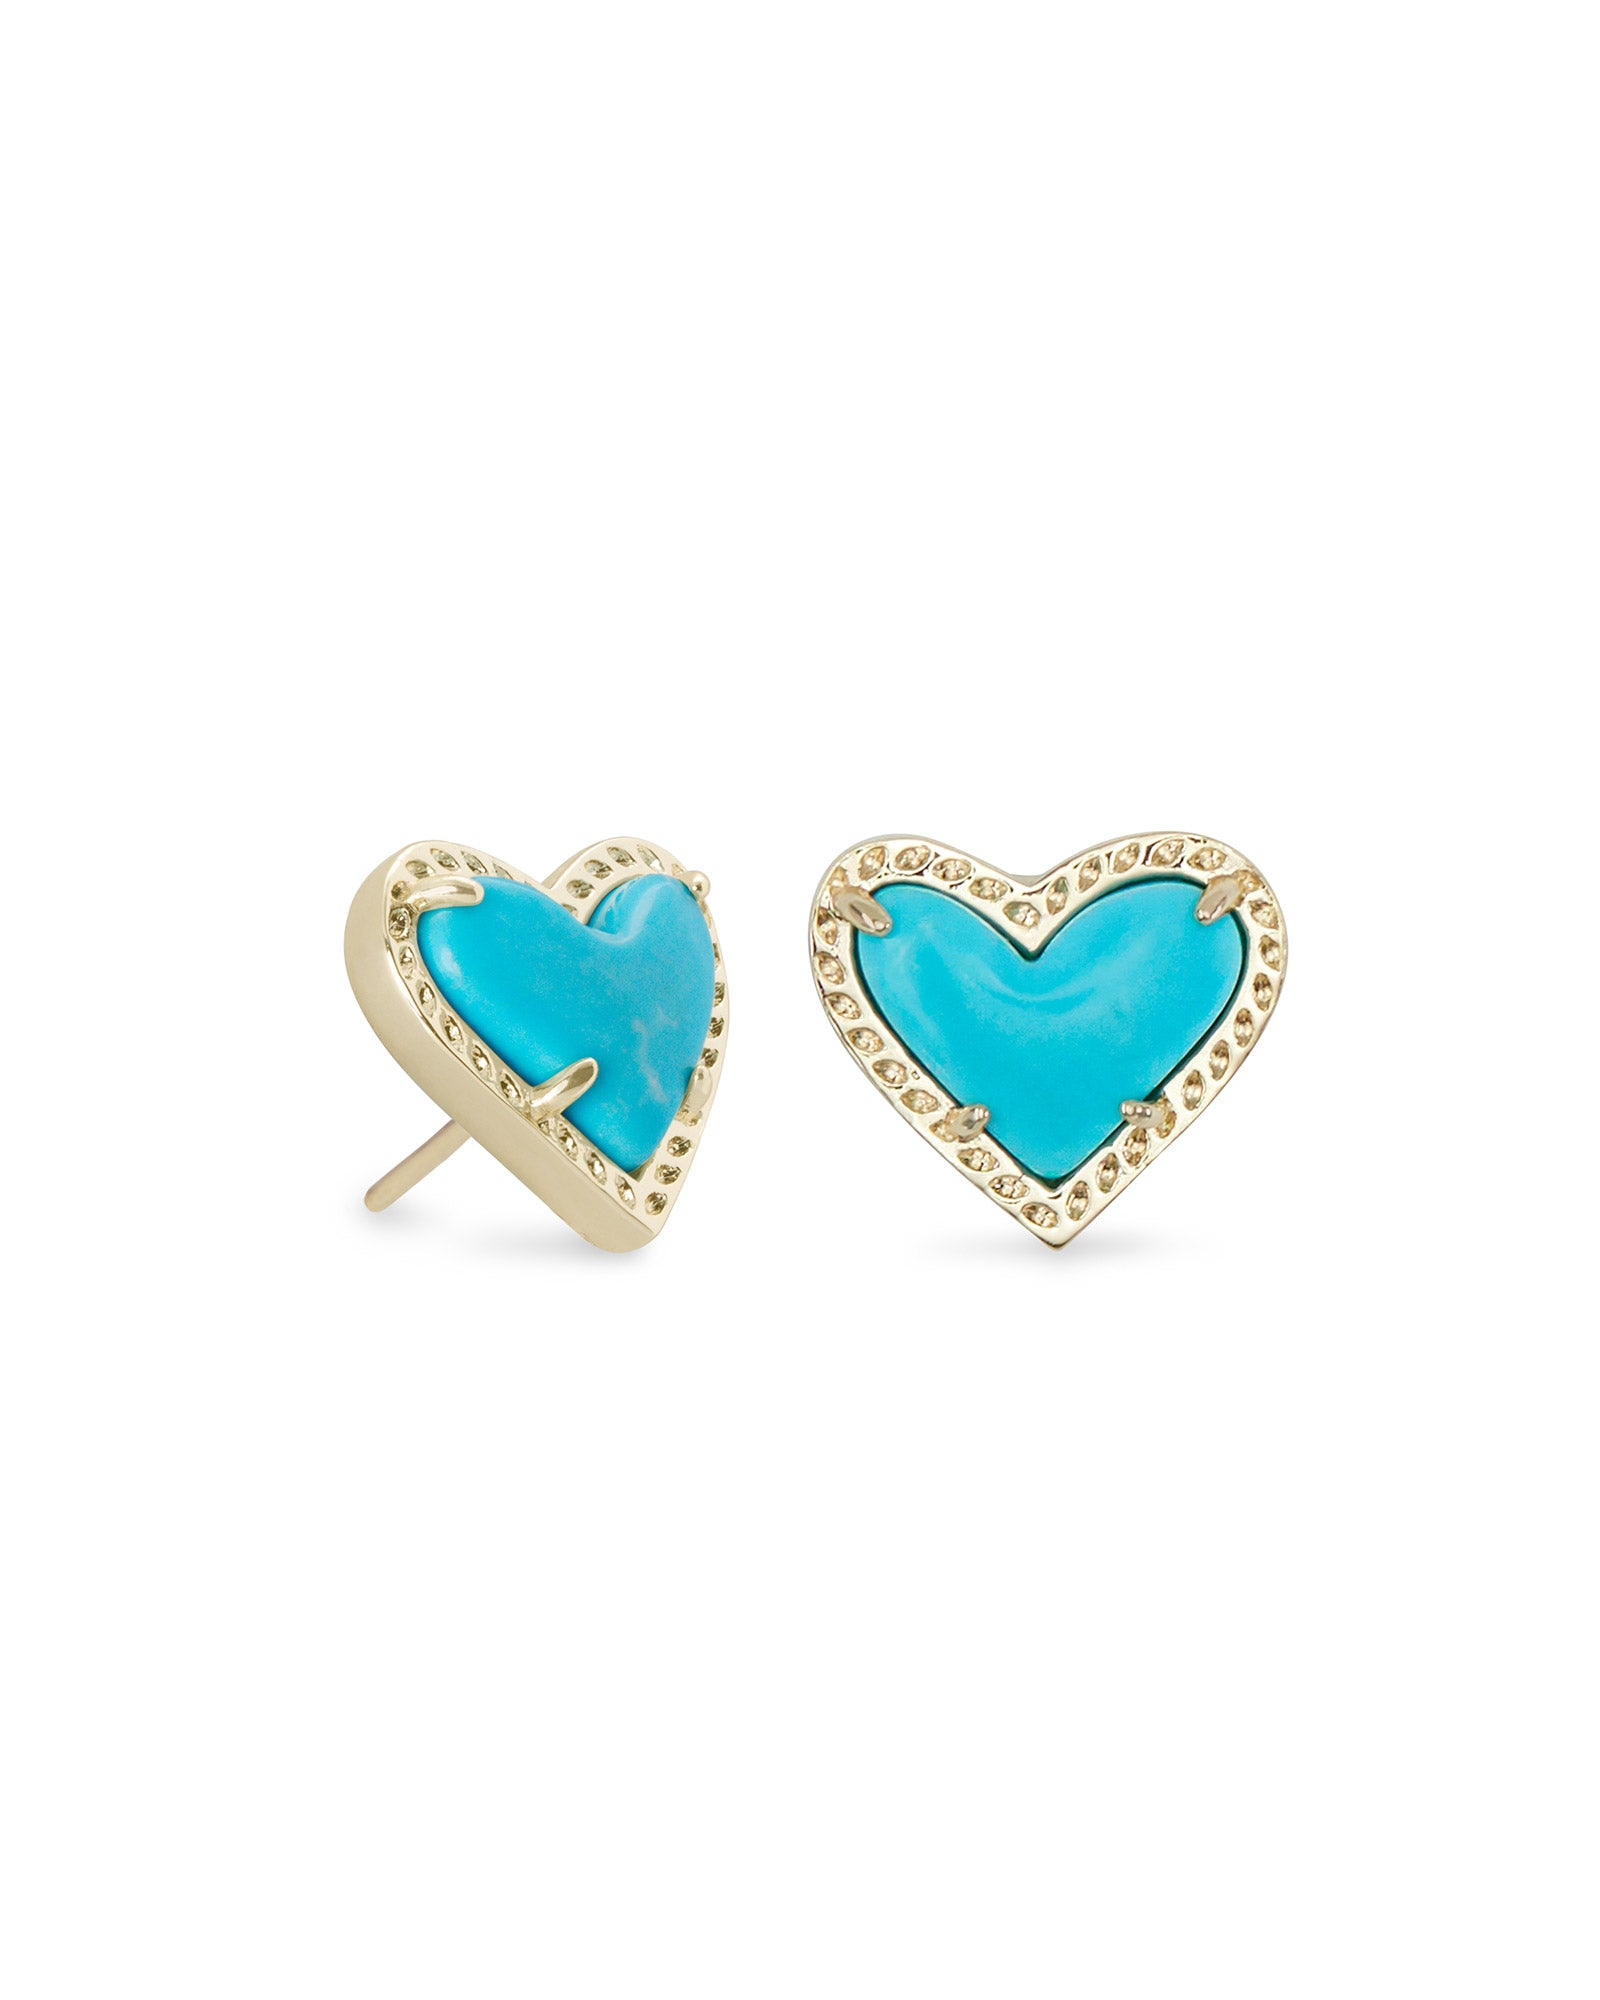 Ari Heart Gold Stud Earring in Turquoise